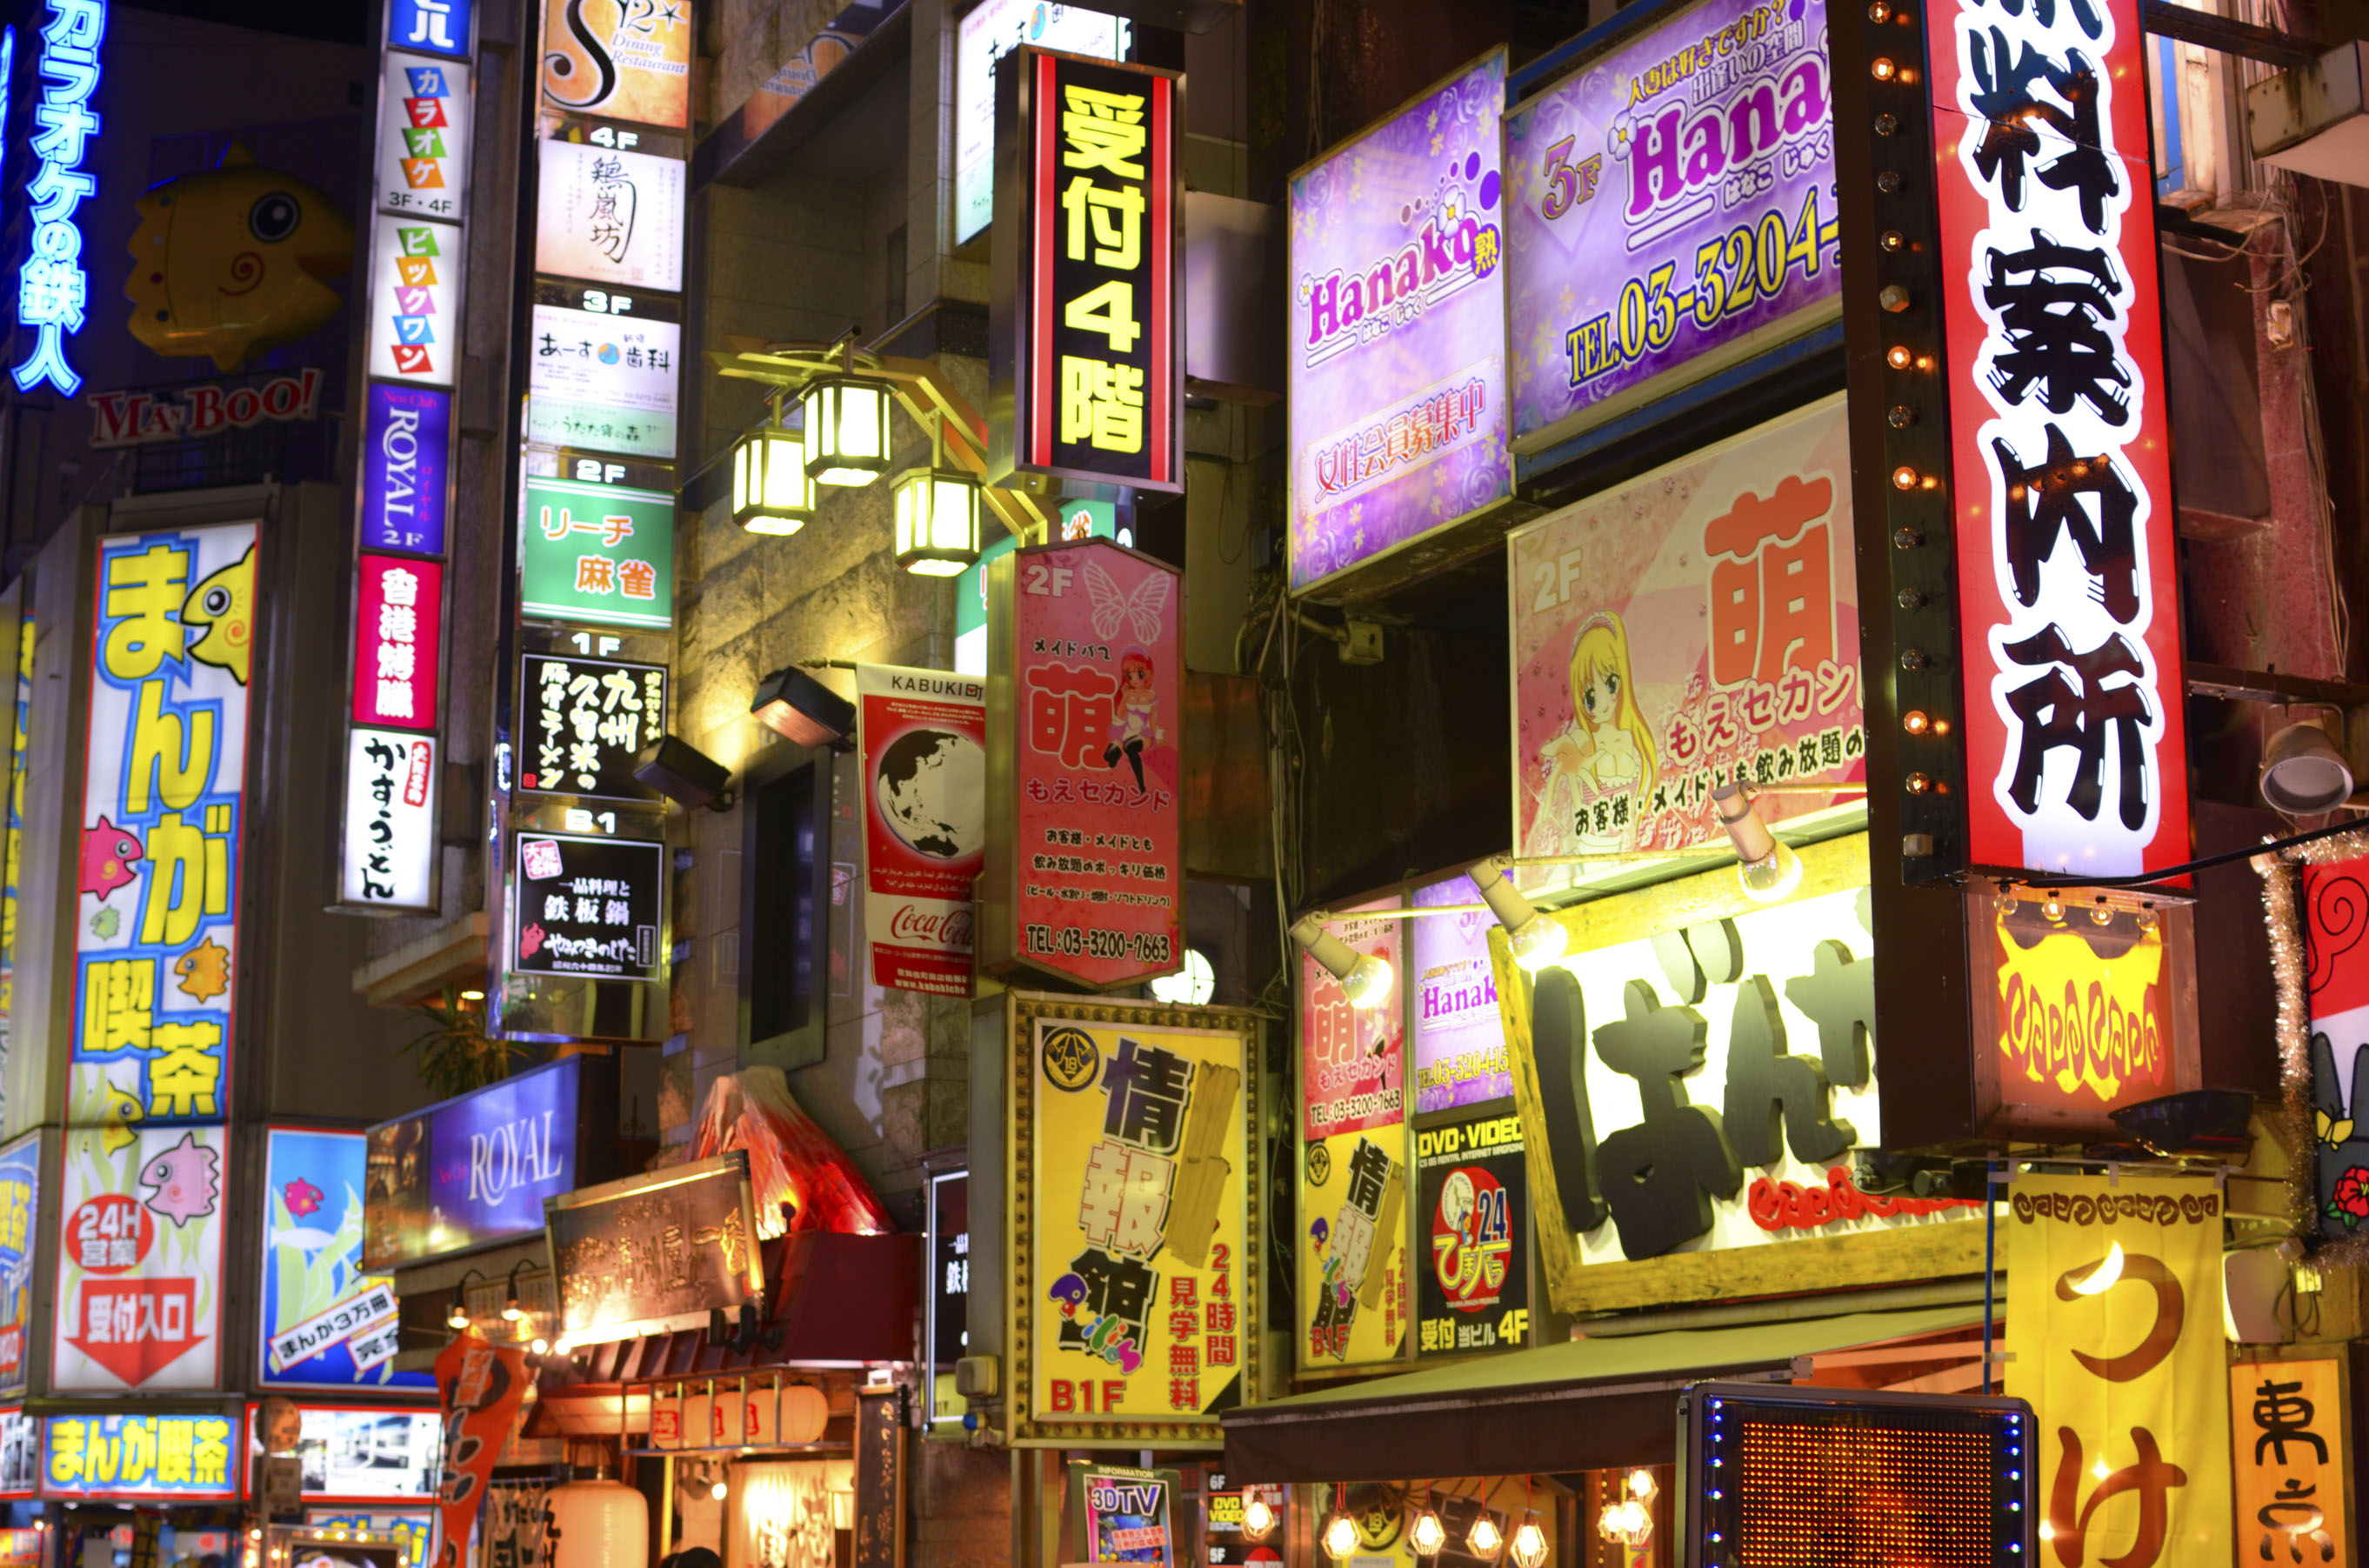 Neon signs for sex industry venues are seen among the bars and clubs in Tokyo's Kabuki-cho red light district. Economic hardship is pushing many middle-aged women toward the nation's sex industry, despite the stigma and physical risk. | SEAN PAVONE PHOTO